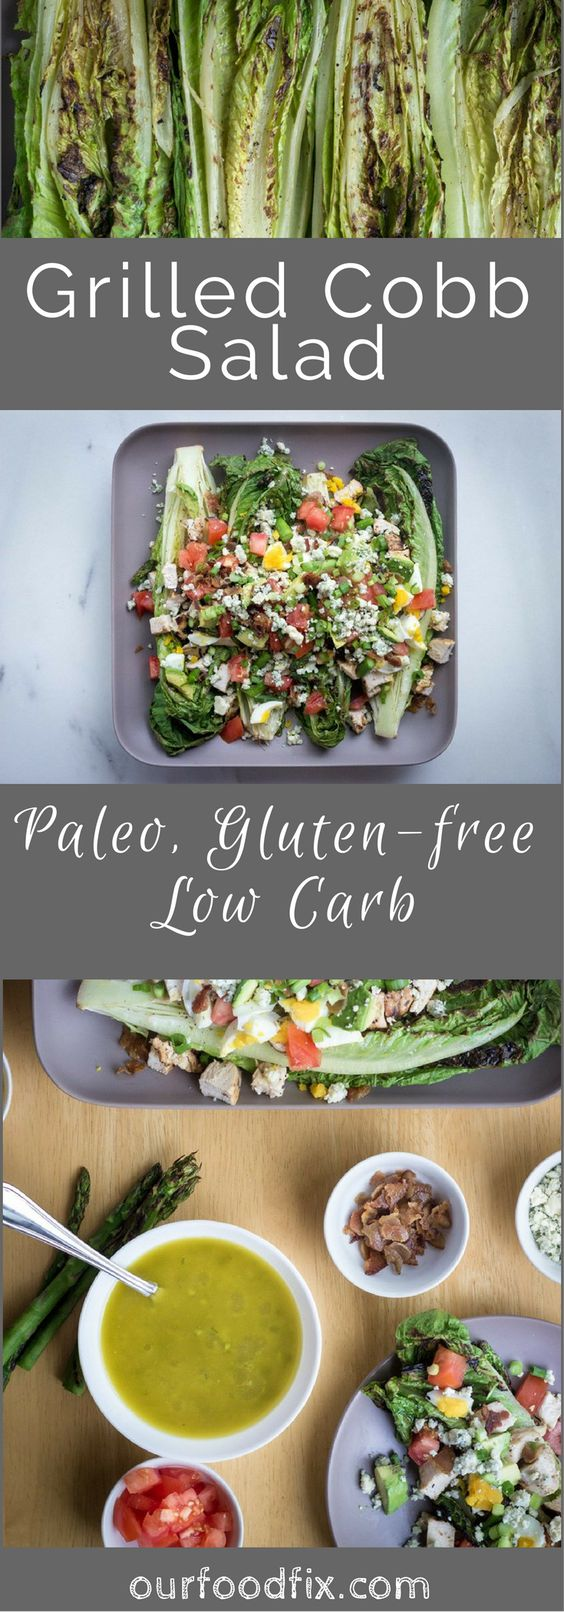 Paleo recipes | Gluten free recipes | Low carb recipes | Party food | Memorial Day | BBQ| Football food | Salad recipes | Party recipes | Grilled dishes | Cobb salad | Make ahead | Simple meal | Under 30 minute meal | Easy dinner | Labor Day